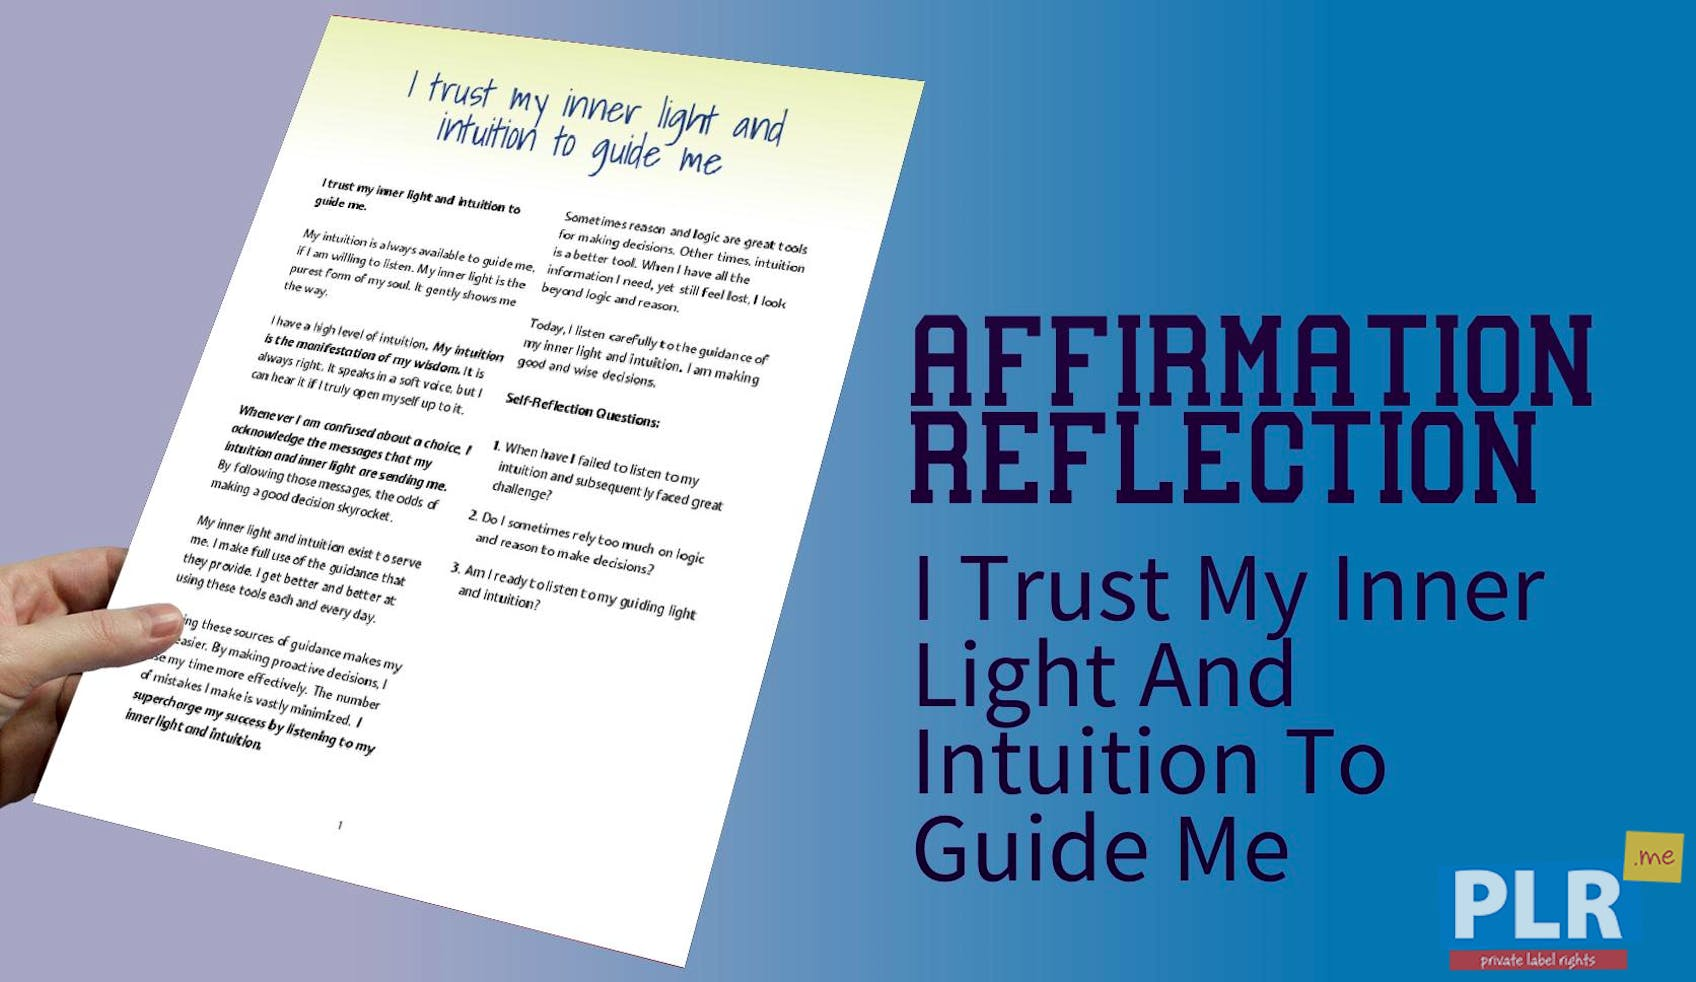 I Trust My Inner Light And Intuition To Guide Me